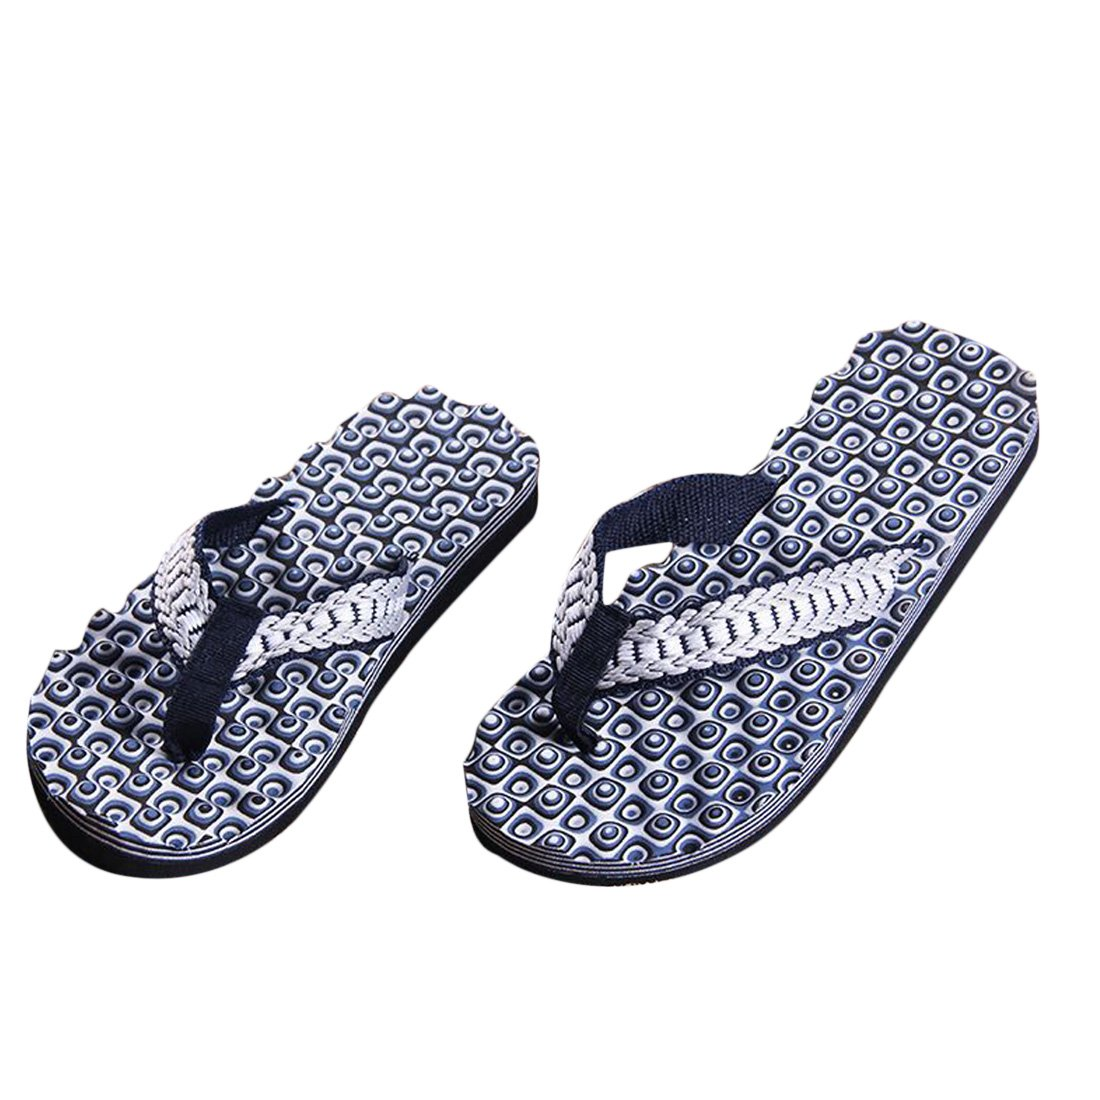 Voberry Men Summer Comfortable Massage Flip Flops Shoes Sandals Male Slipper Indoor & Outdoor Flip-flops (41, Blue)